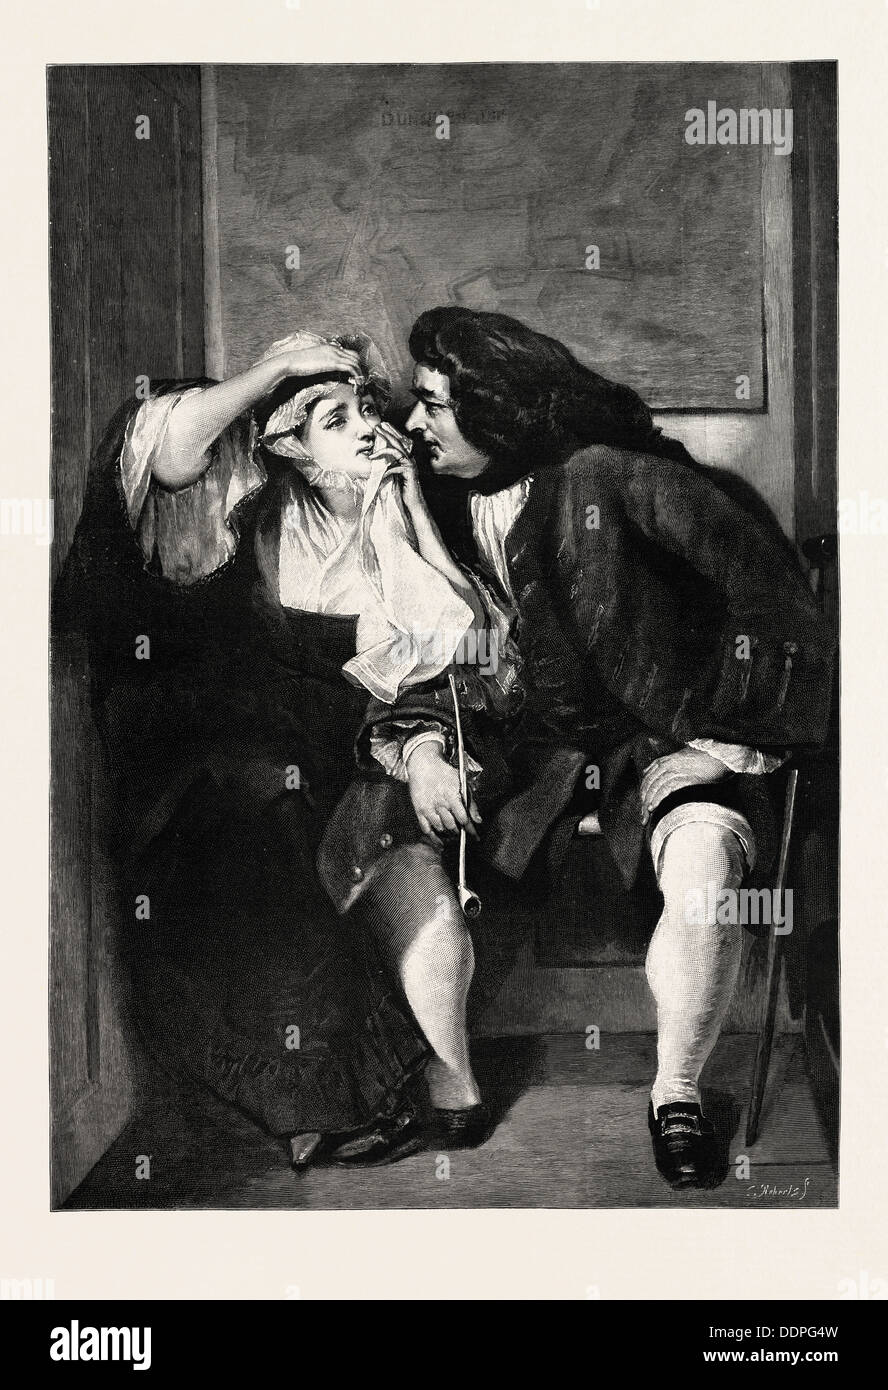 UNCLE TOBY AND WIDOW WADMAN, PICTURE BY C.R. LESLIE, engraving 1890 - Stock Image